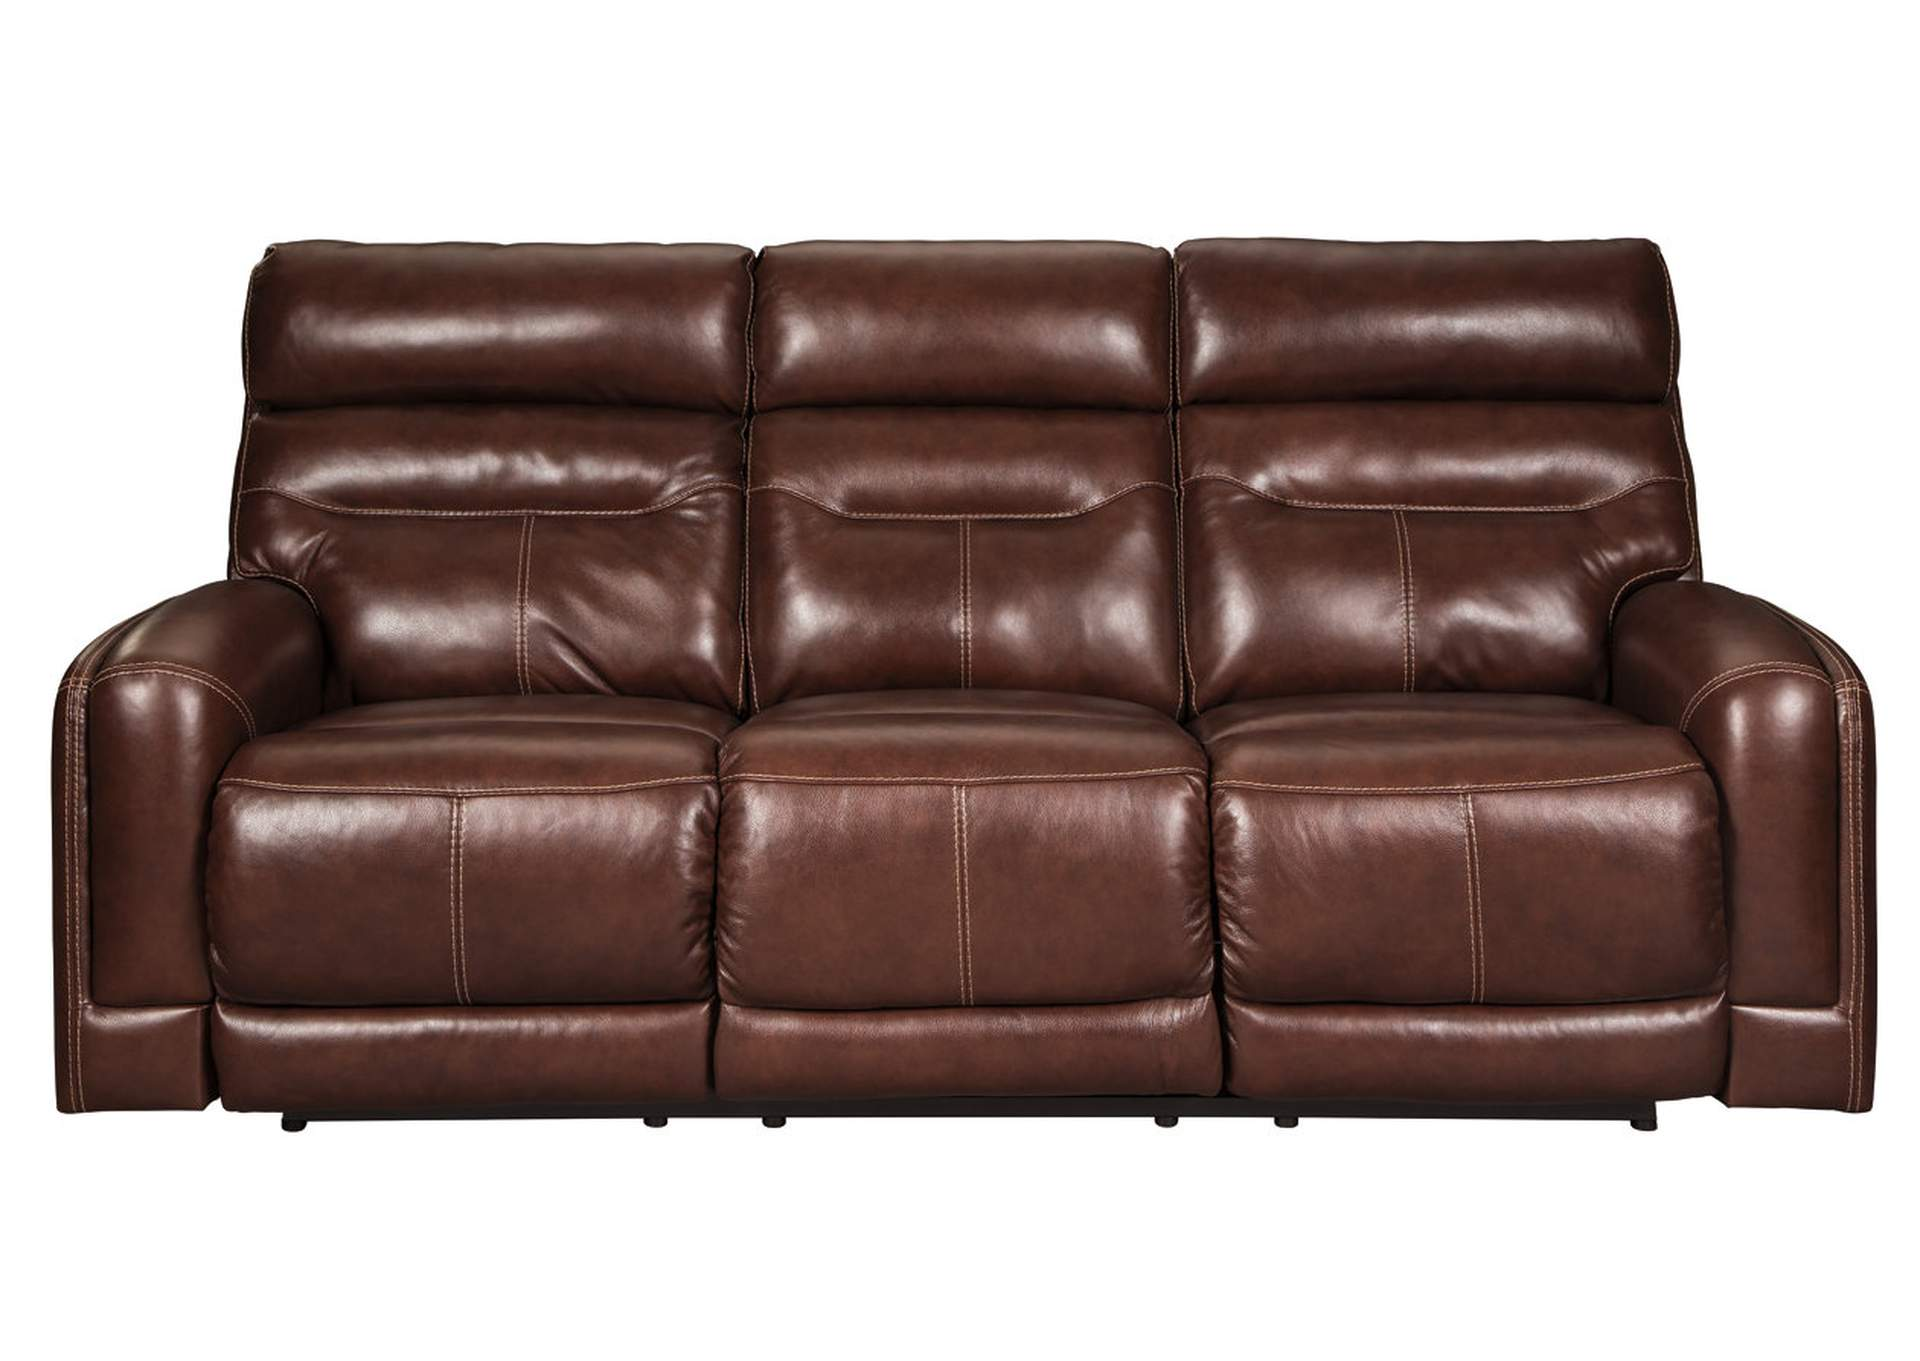 Sessom Walnut Power Reclining Sofa w/Adjustable Headrest,Signature Design By Ashley